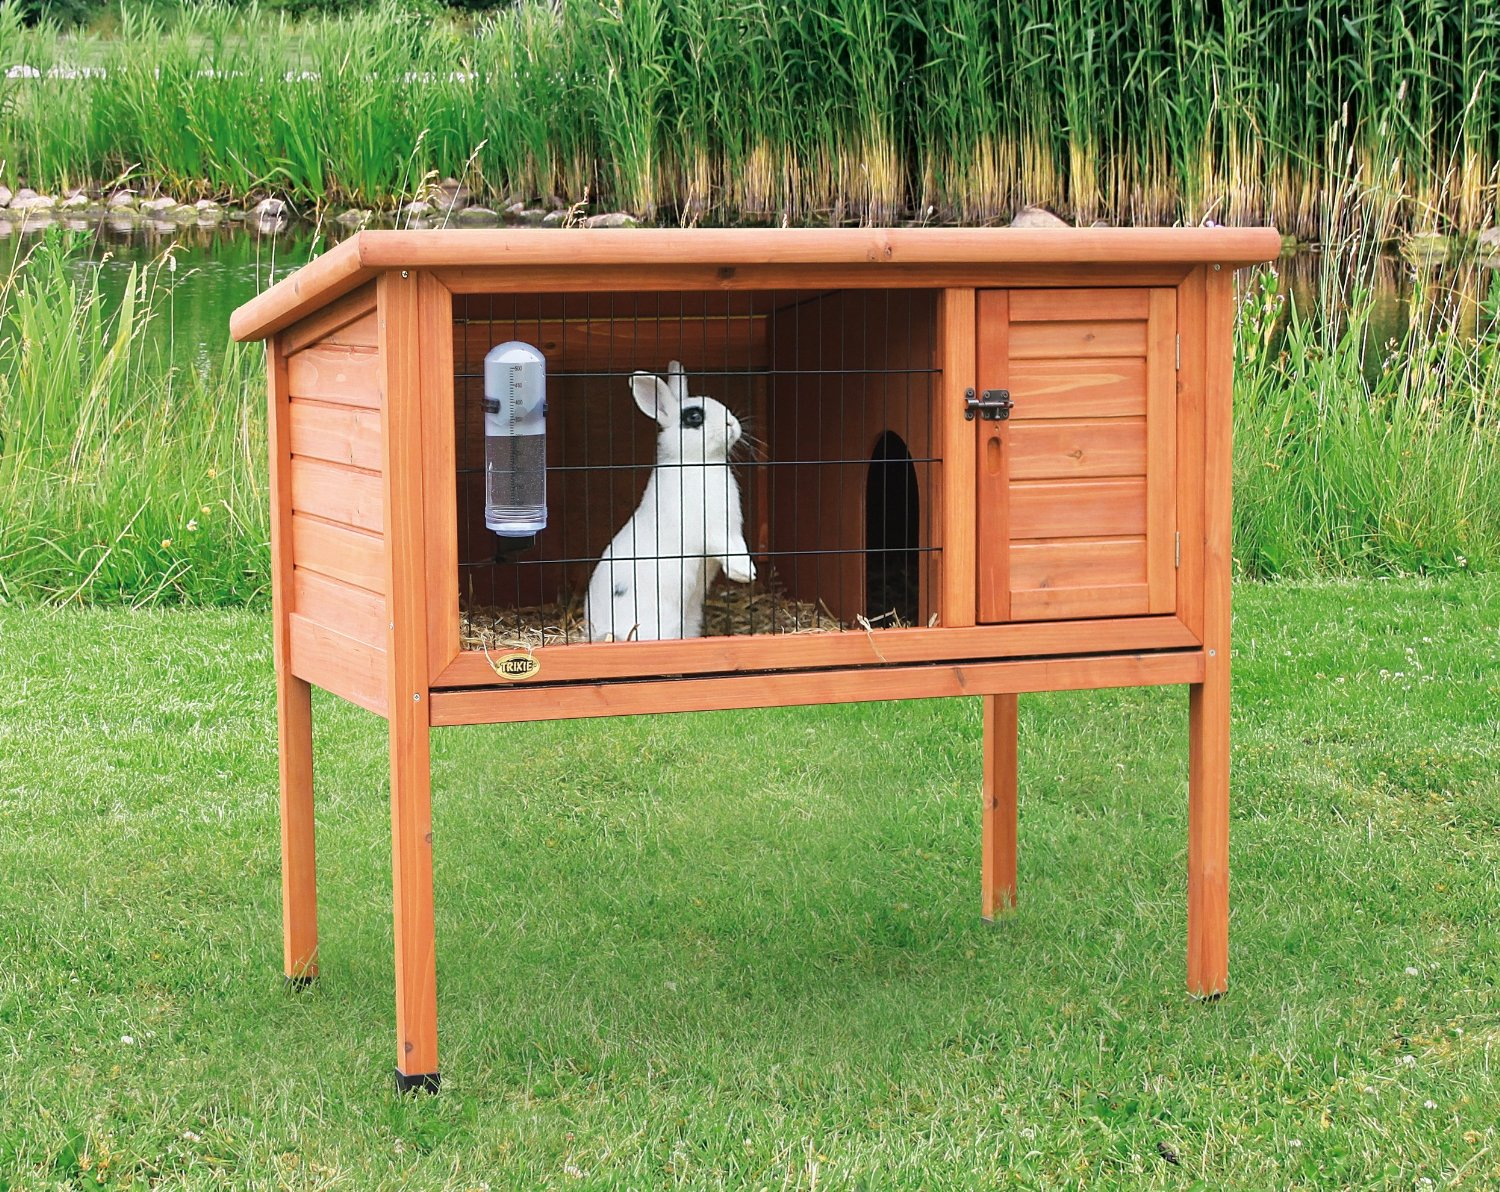 Horrible Sale Cardiff Rabbit Hutch Sale Nottingham Rabbit Hutches A Secured Place Your Bunny Pet Eggshell Rabbit Hutch houzz-03 Rabbit Hutch For Sale